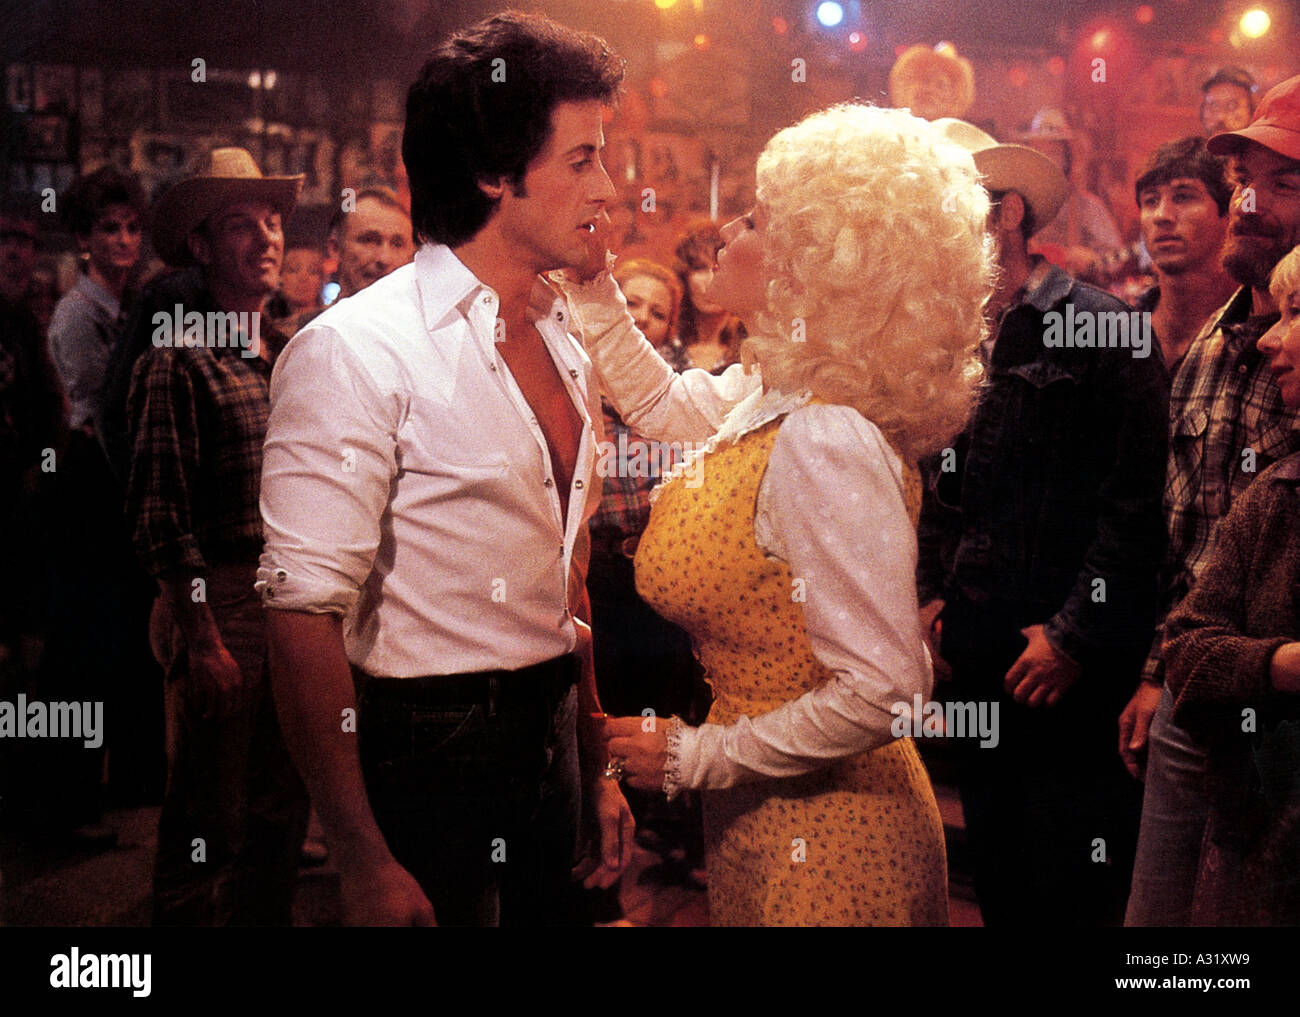 RHINESTONE Sylvester Stallone and Dolly Parton in the 1984 20th Century Fox film - Stock Image